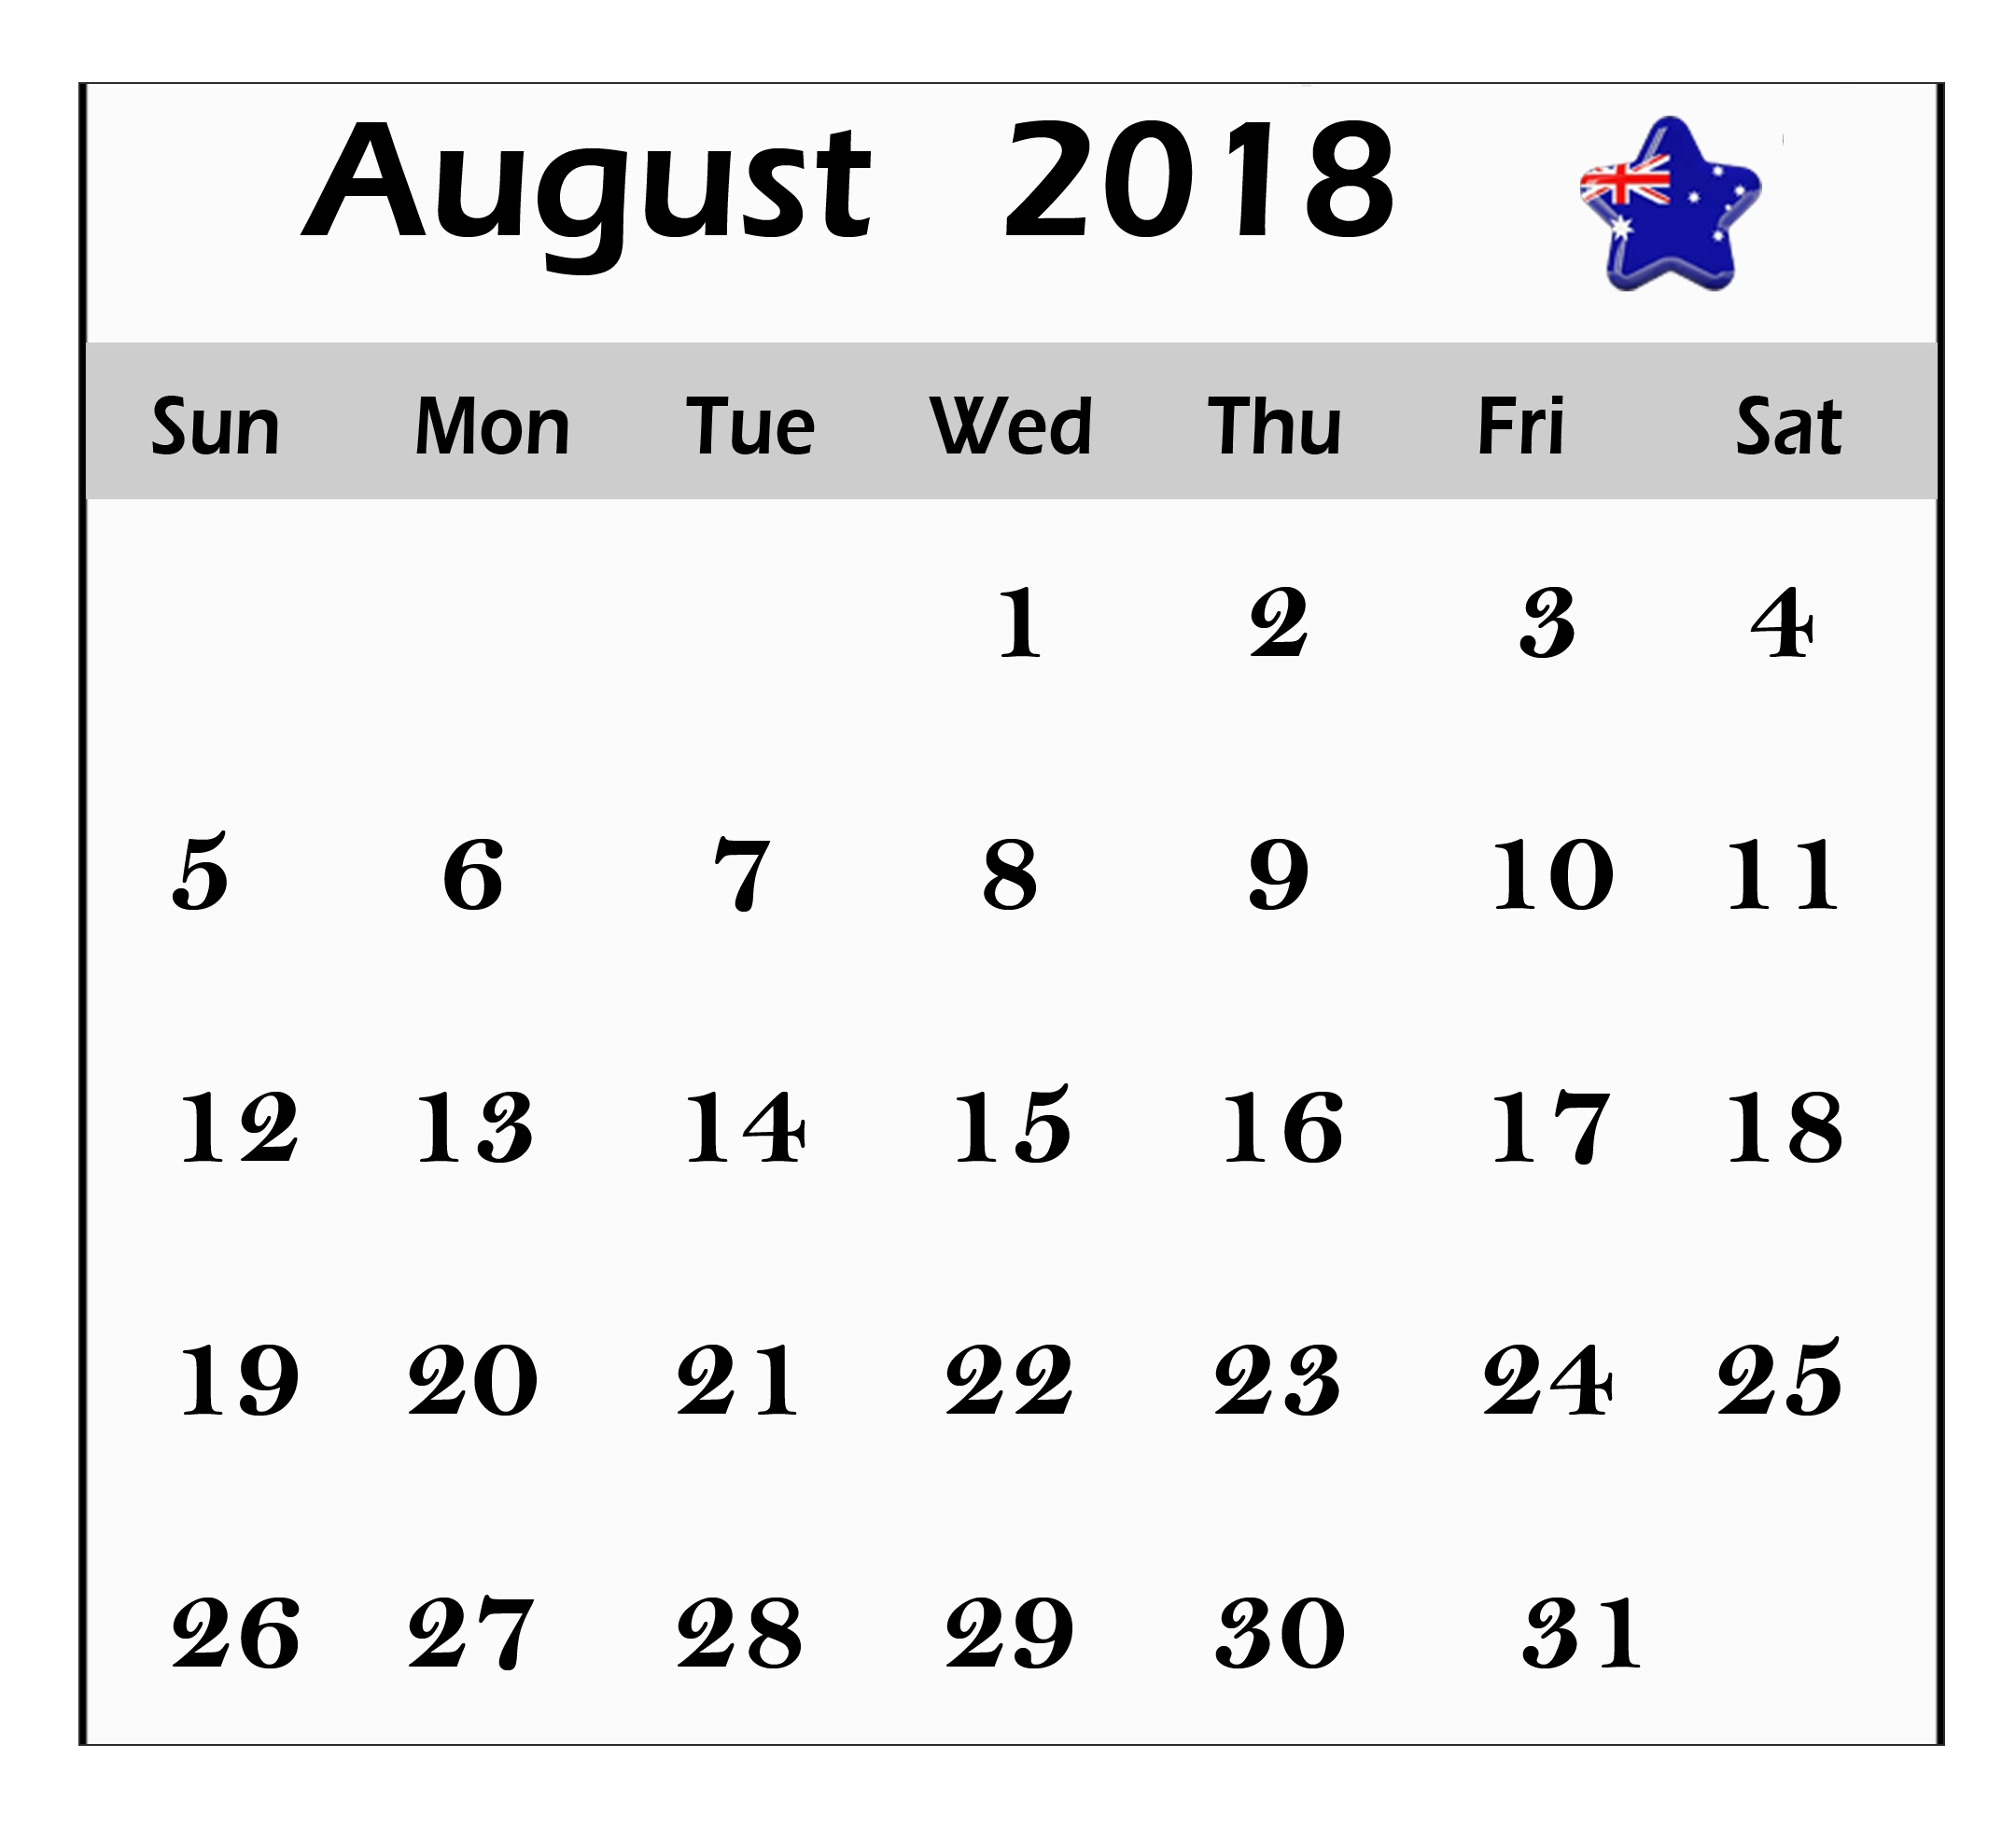 august 2018 calendar australia worksheet free printable calendar 2018 Calendar August 2018 Printable Worksheets erdferdf